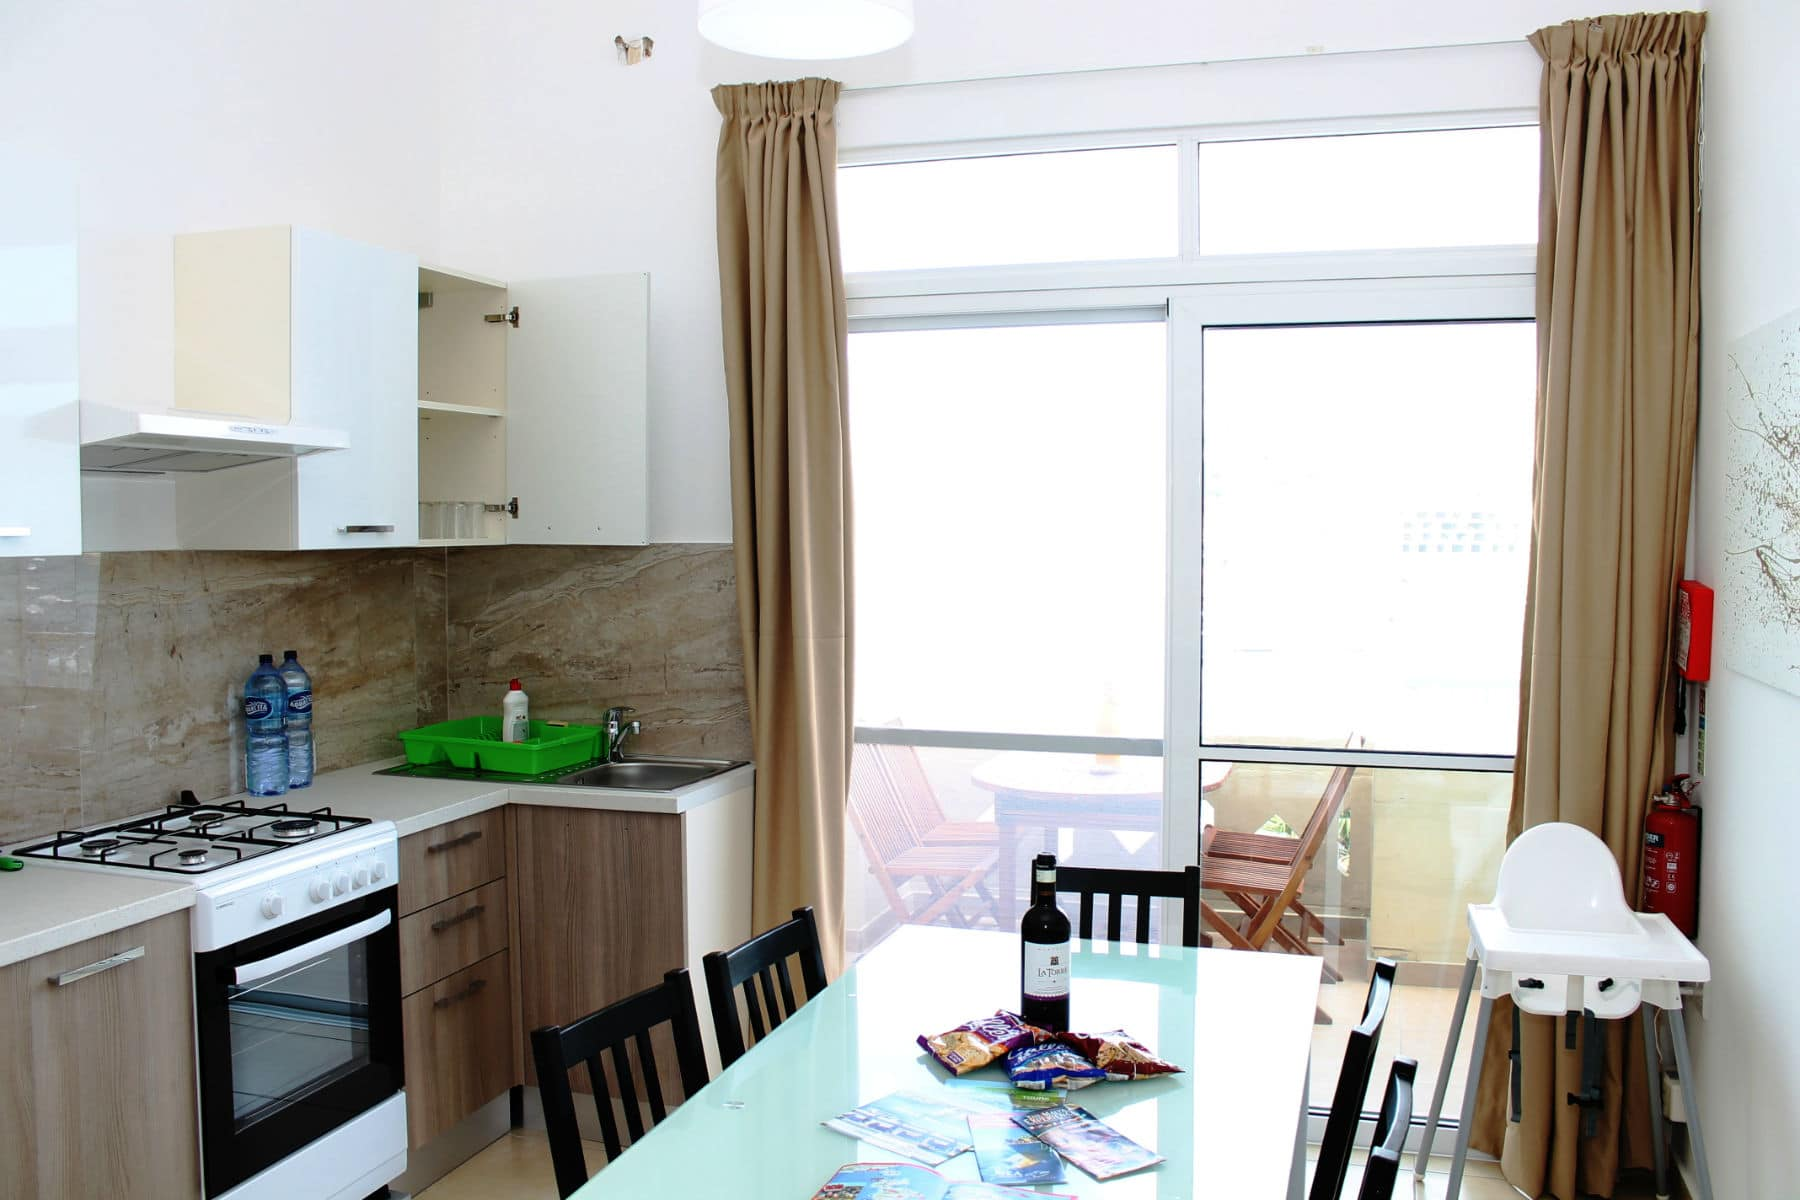 Combined Kitchen Dining Living Room Leading To Seafront TerraceLicing W1920 H1200